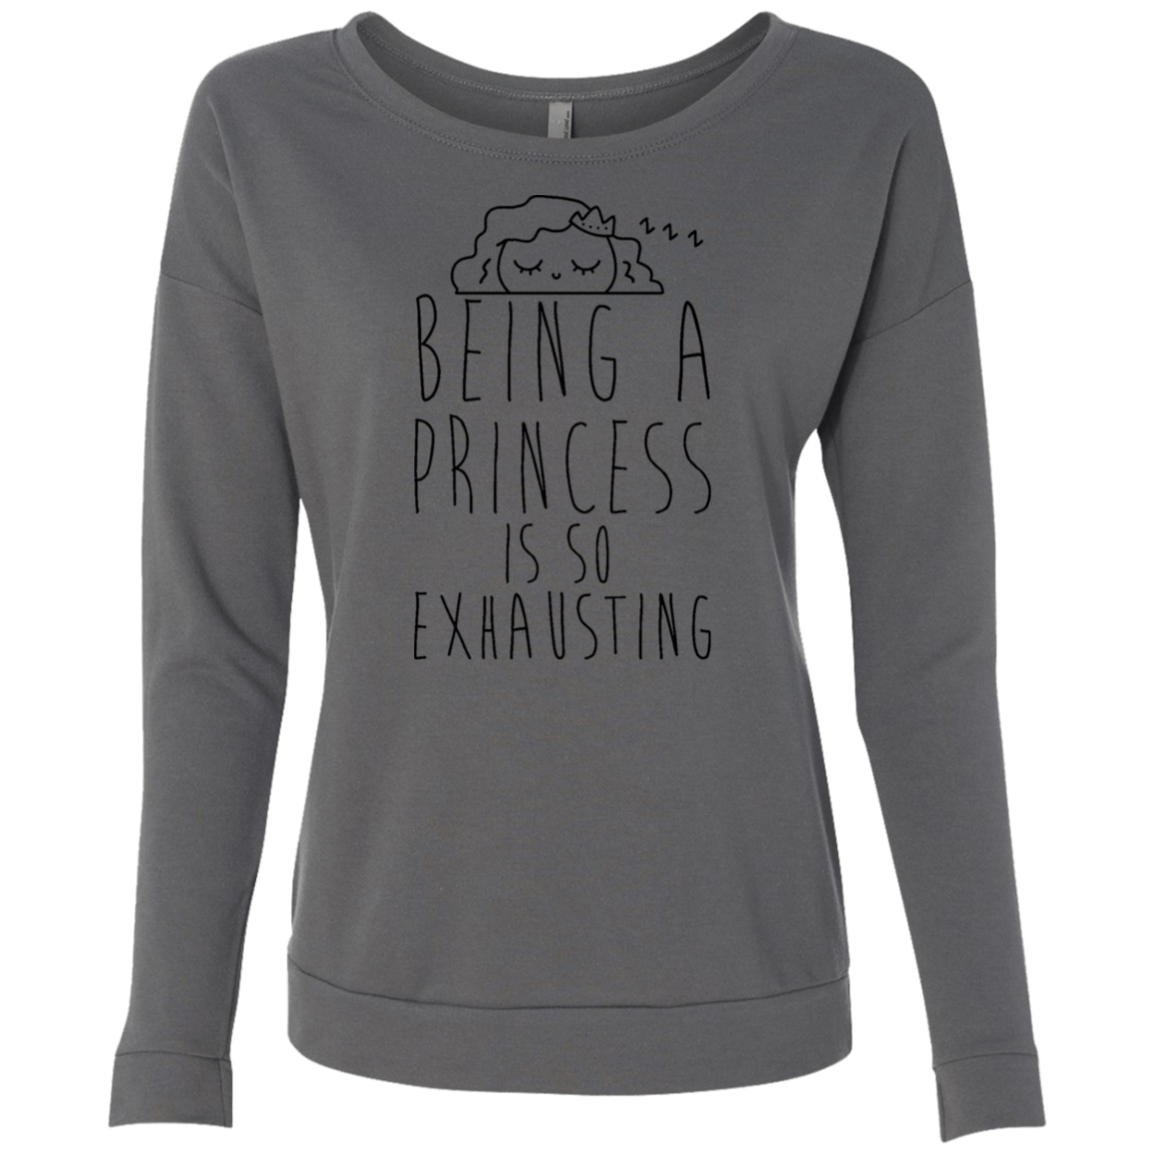 Being a princess is so exhausting Women's French Terry Scoop - Trendy Tees